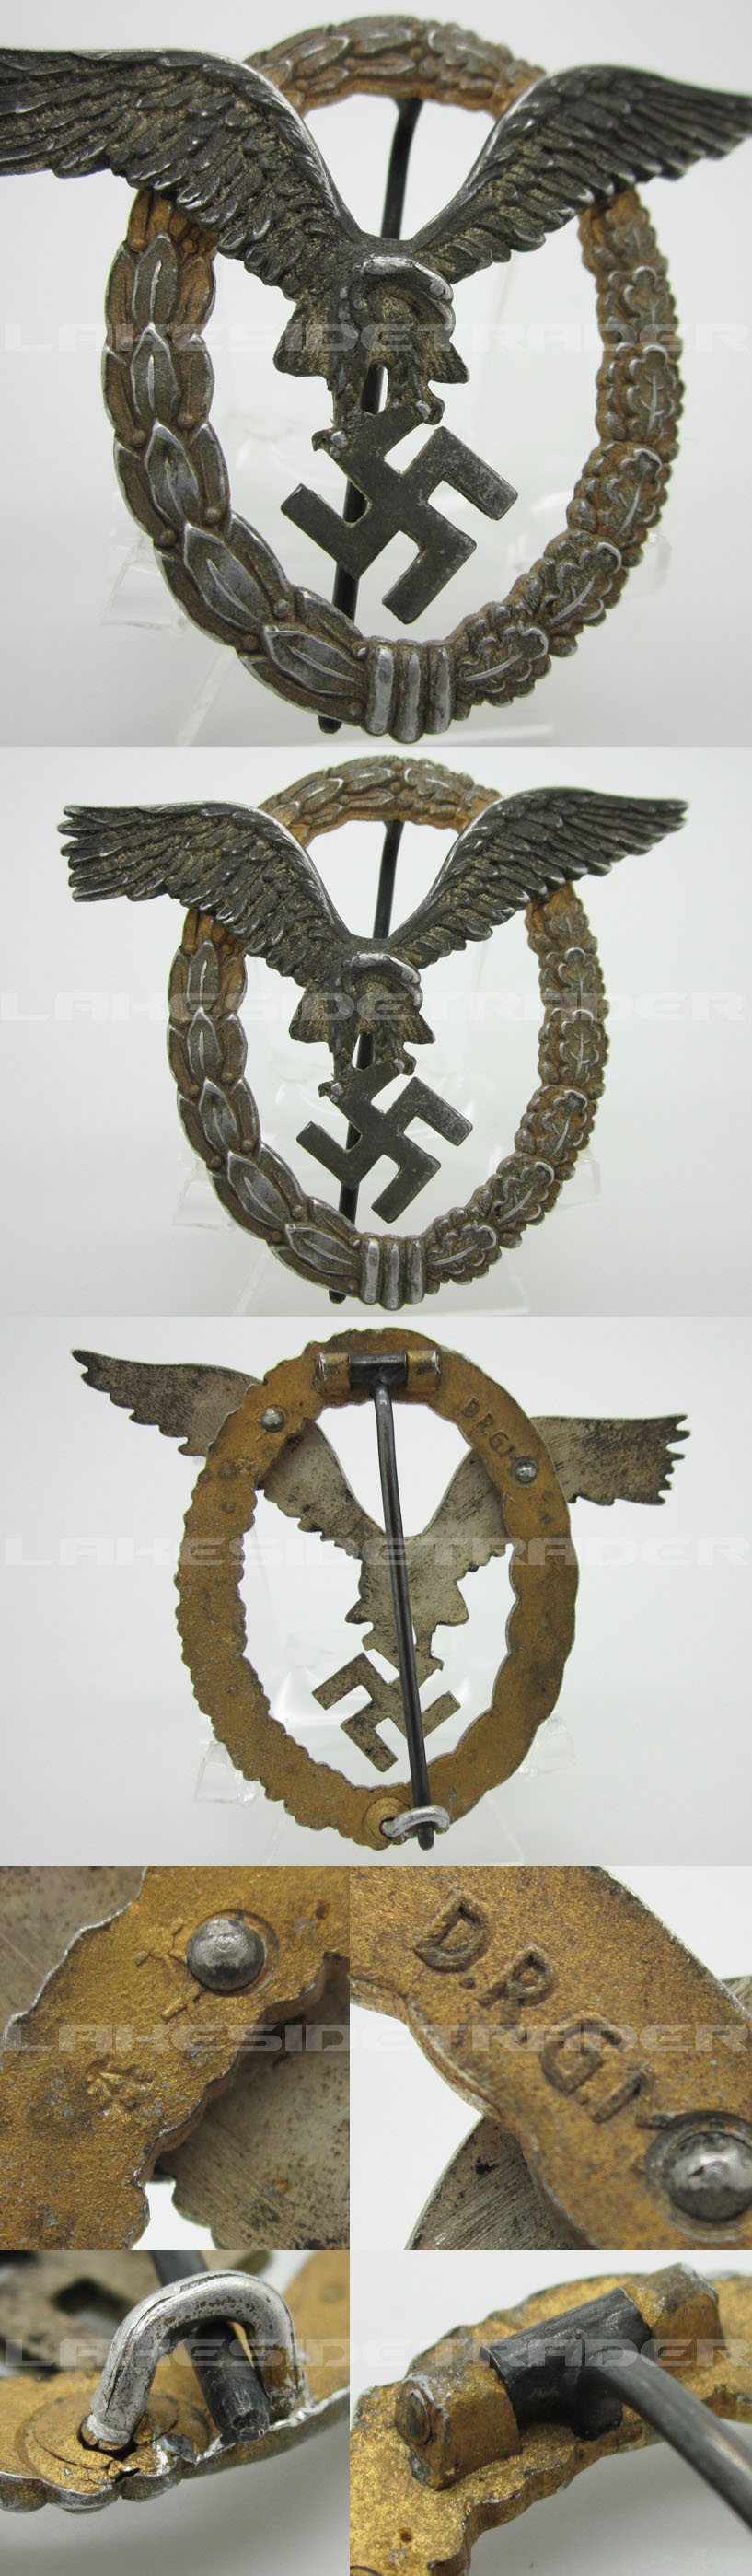 Luftwaffe Aluminum Pilot Observer Badge by Assmann